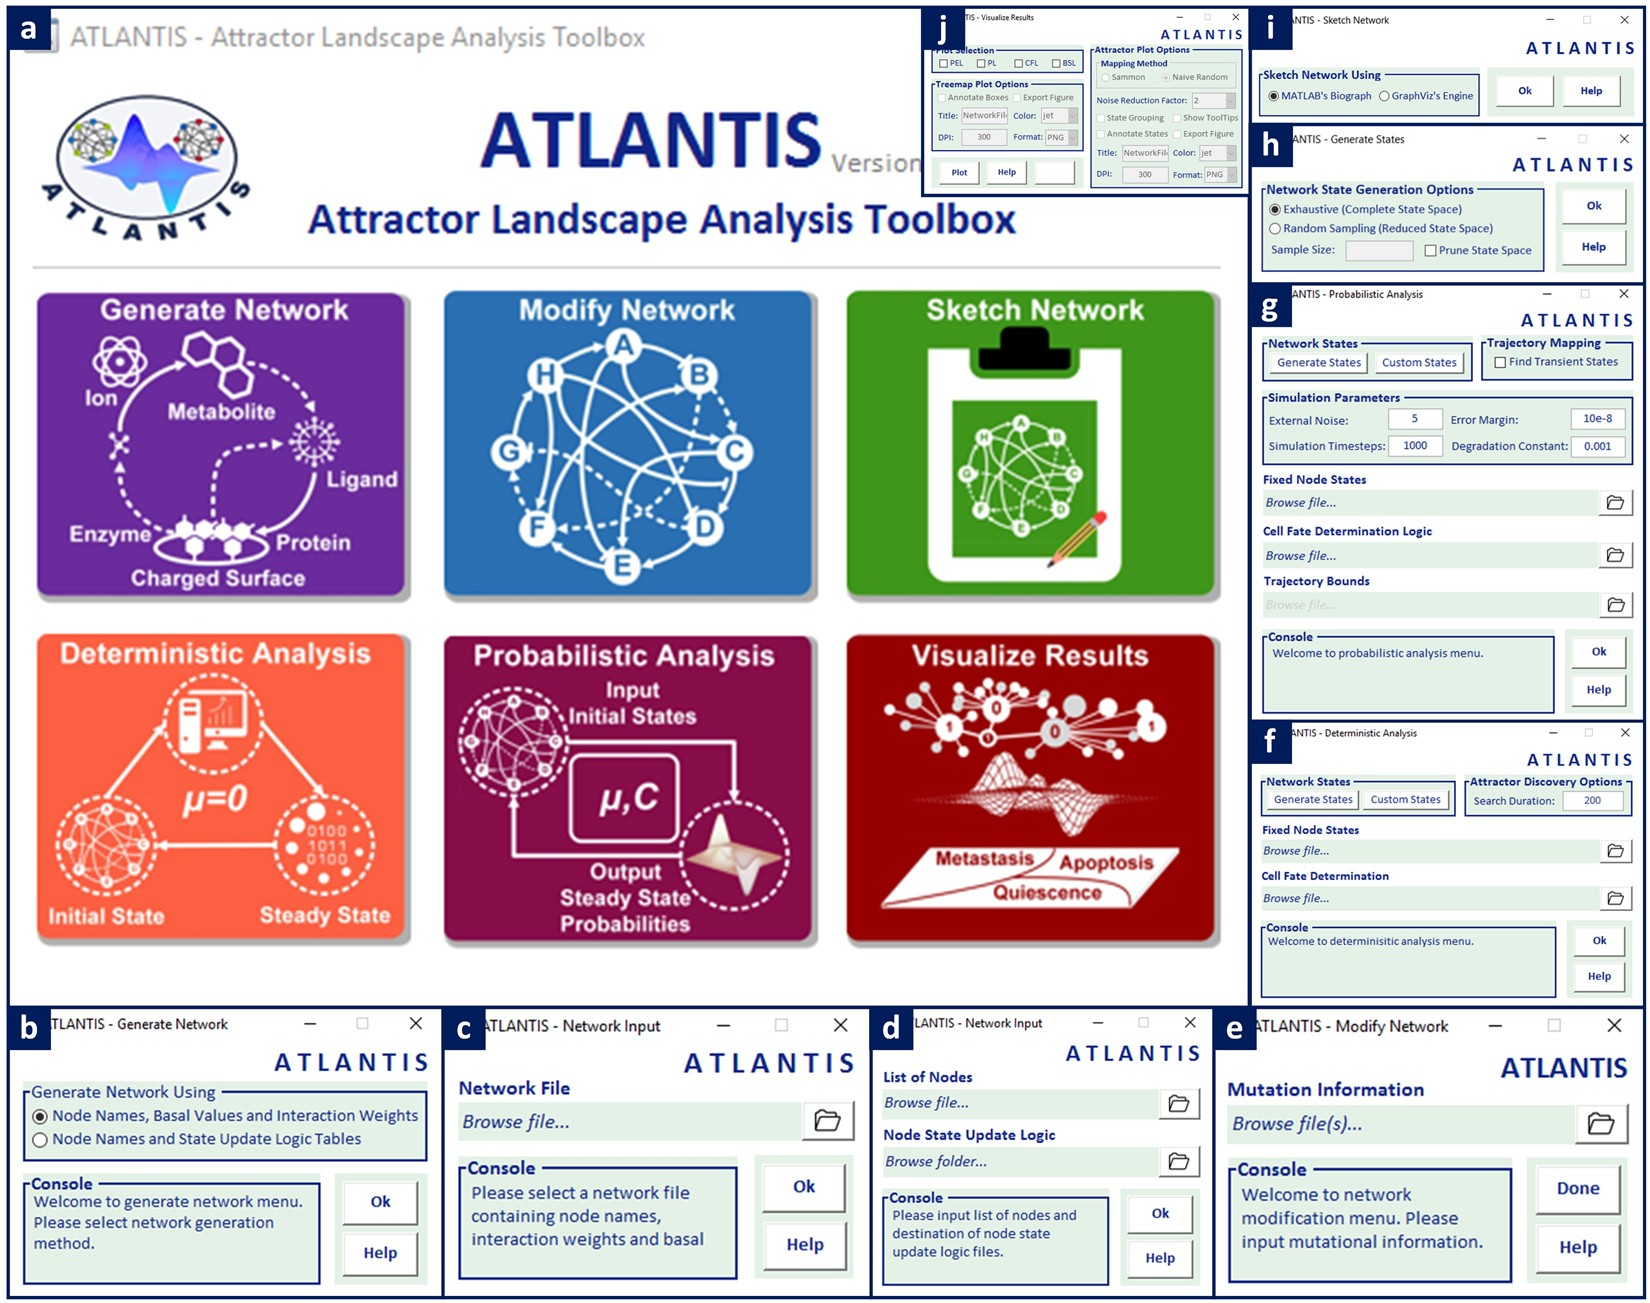 ATLANTIS - Attractor Landscape Analysis Toolbox for Cell